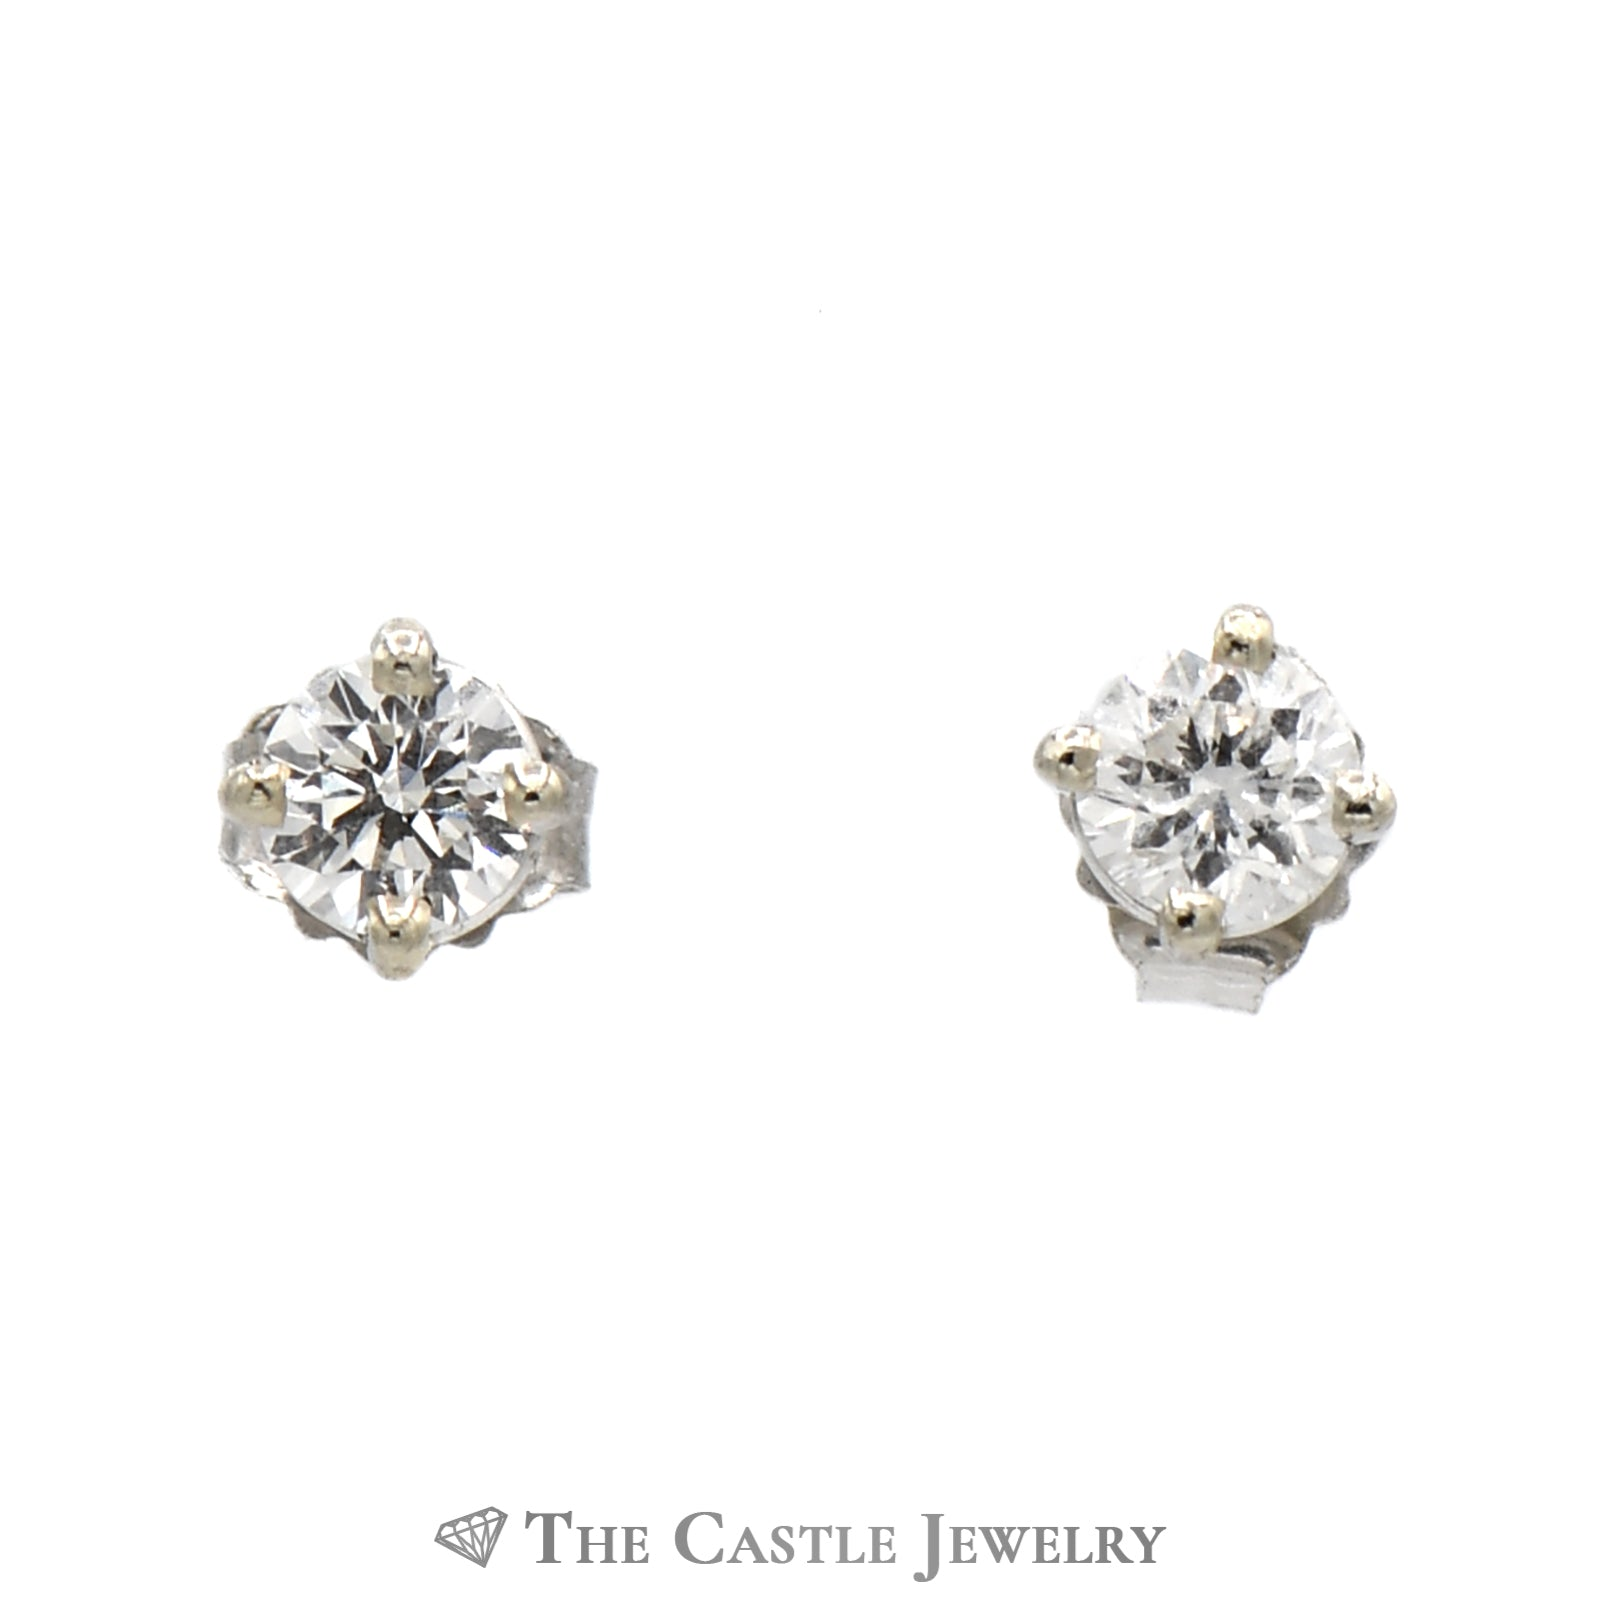 Diamond Stud Earrings .33cttw Round Brilliant Cut in 14K White Gold